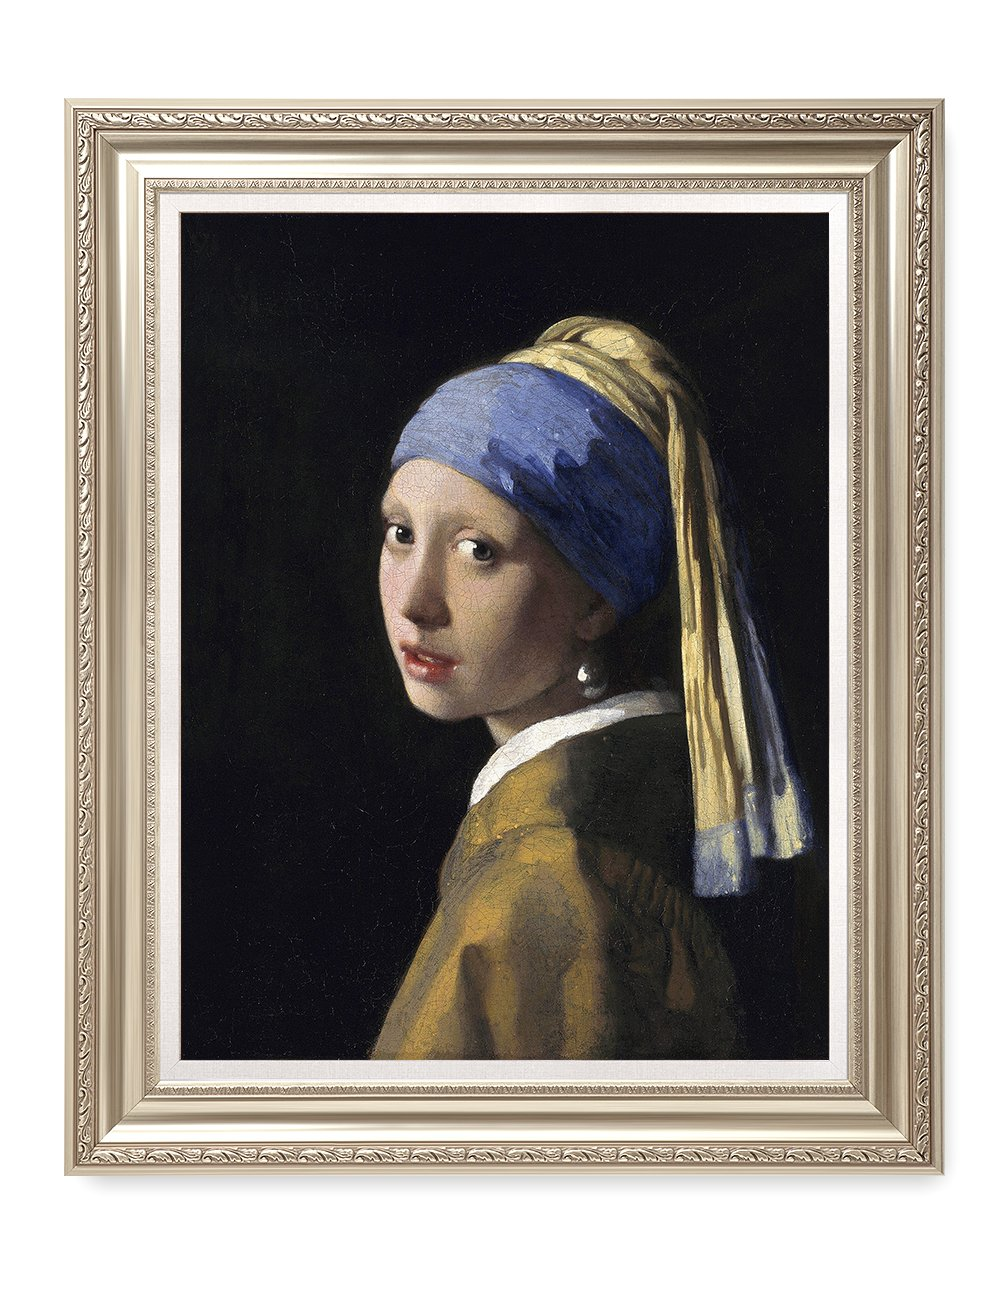 DecorArts - Girl With A Pearl Earring, Johannes Vermeer Classic Art. Giclee Prints Framed Art for Wall Decor. Framed size: 30x36''